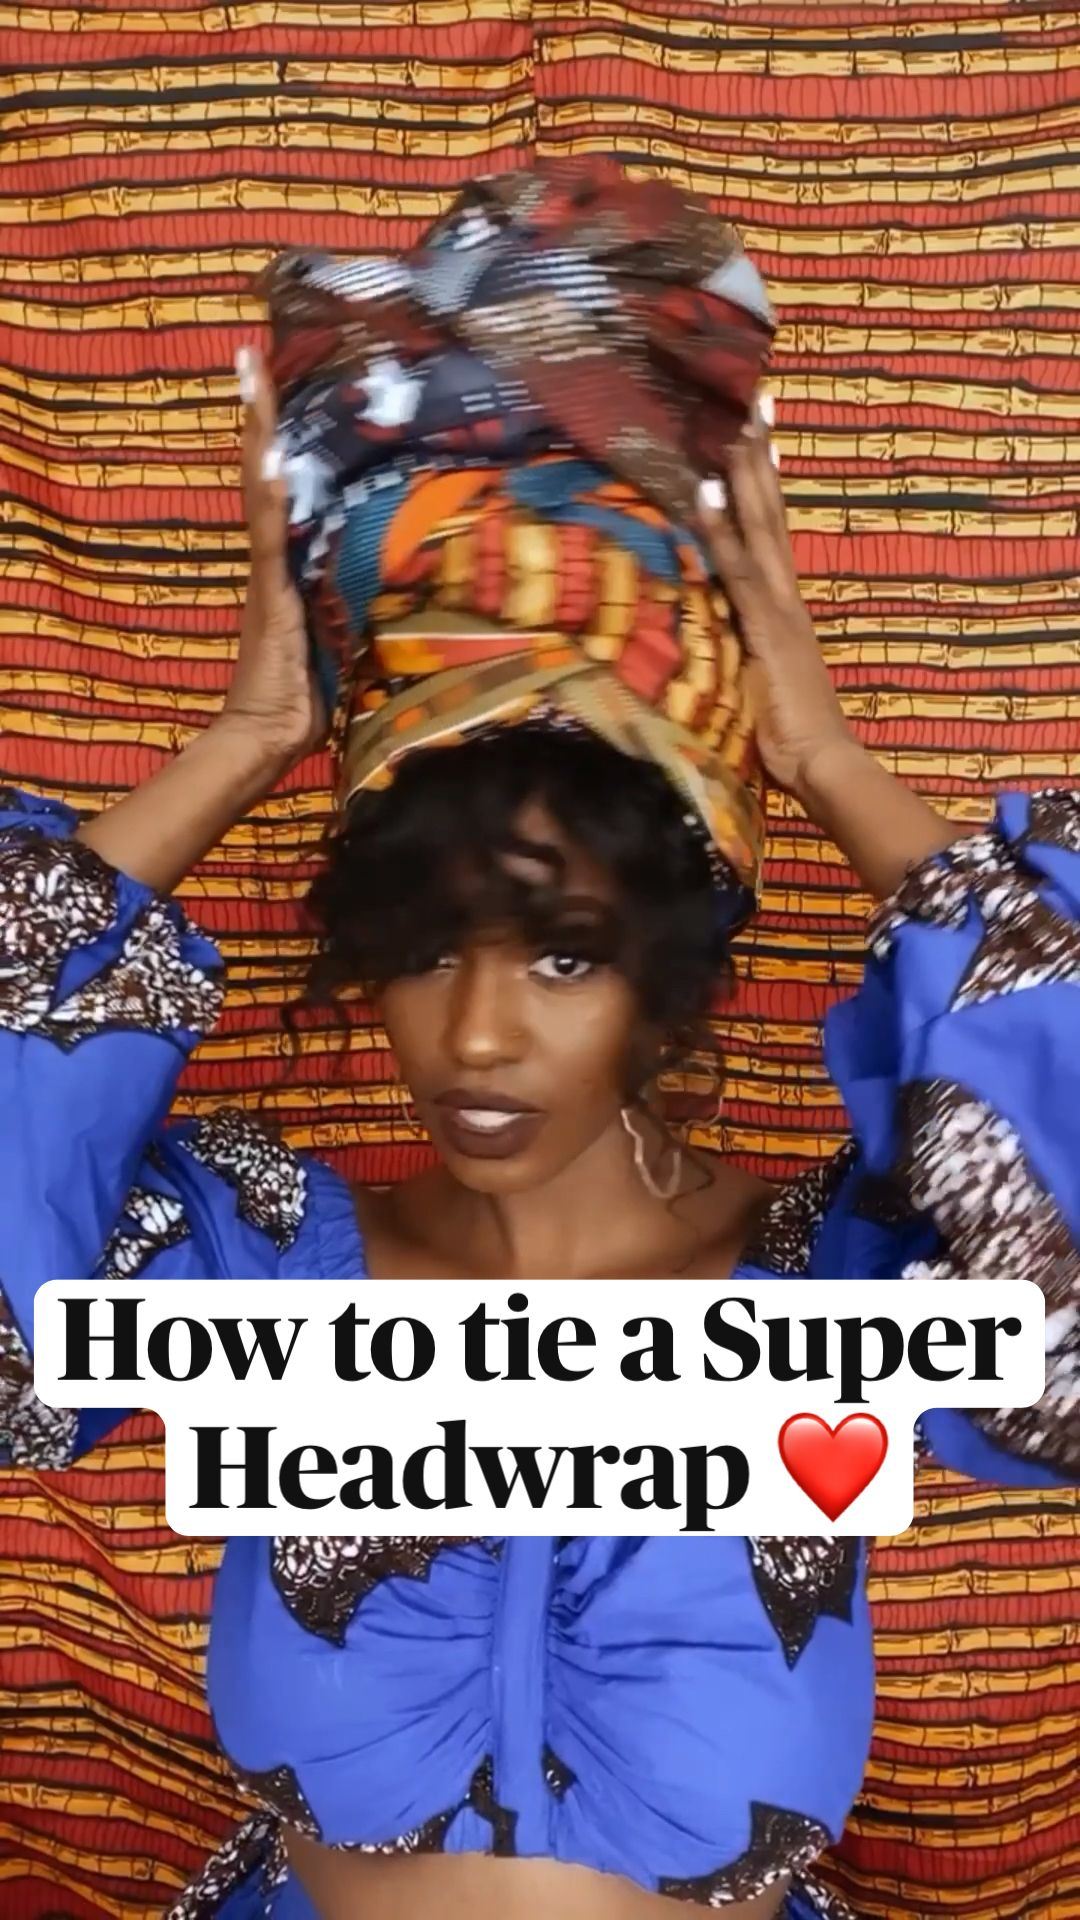 How to tie a Super Headwrap ❤️